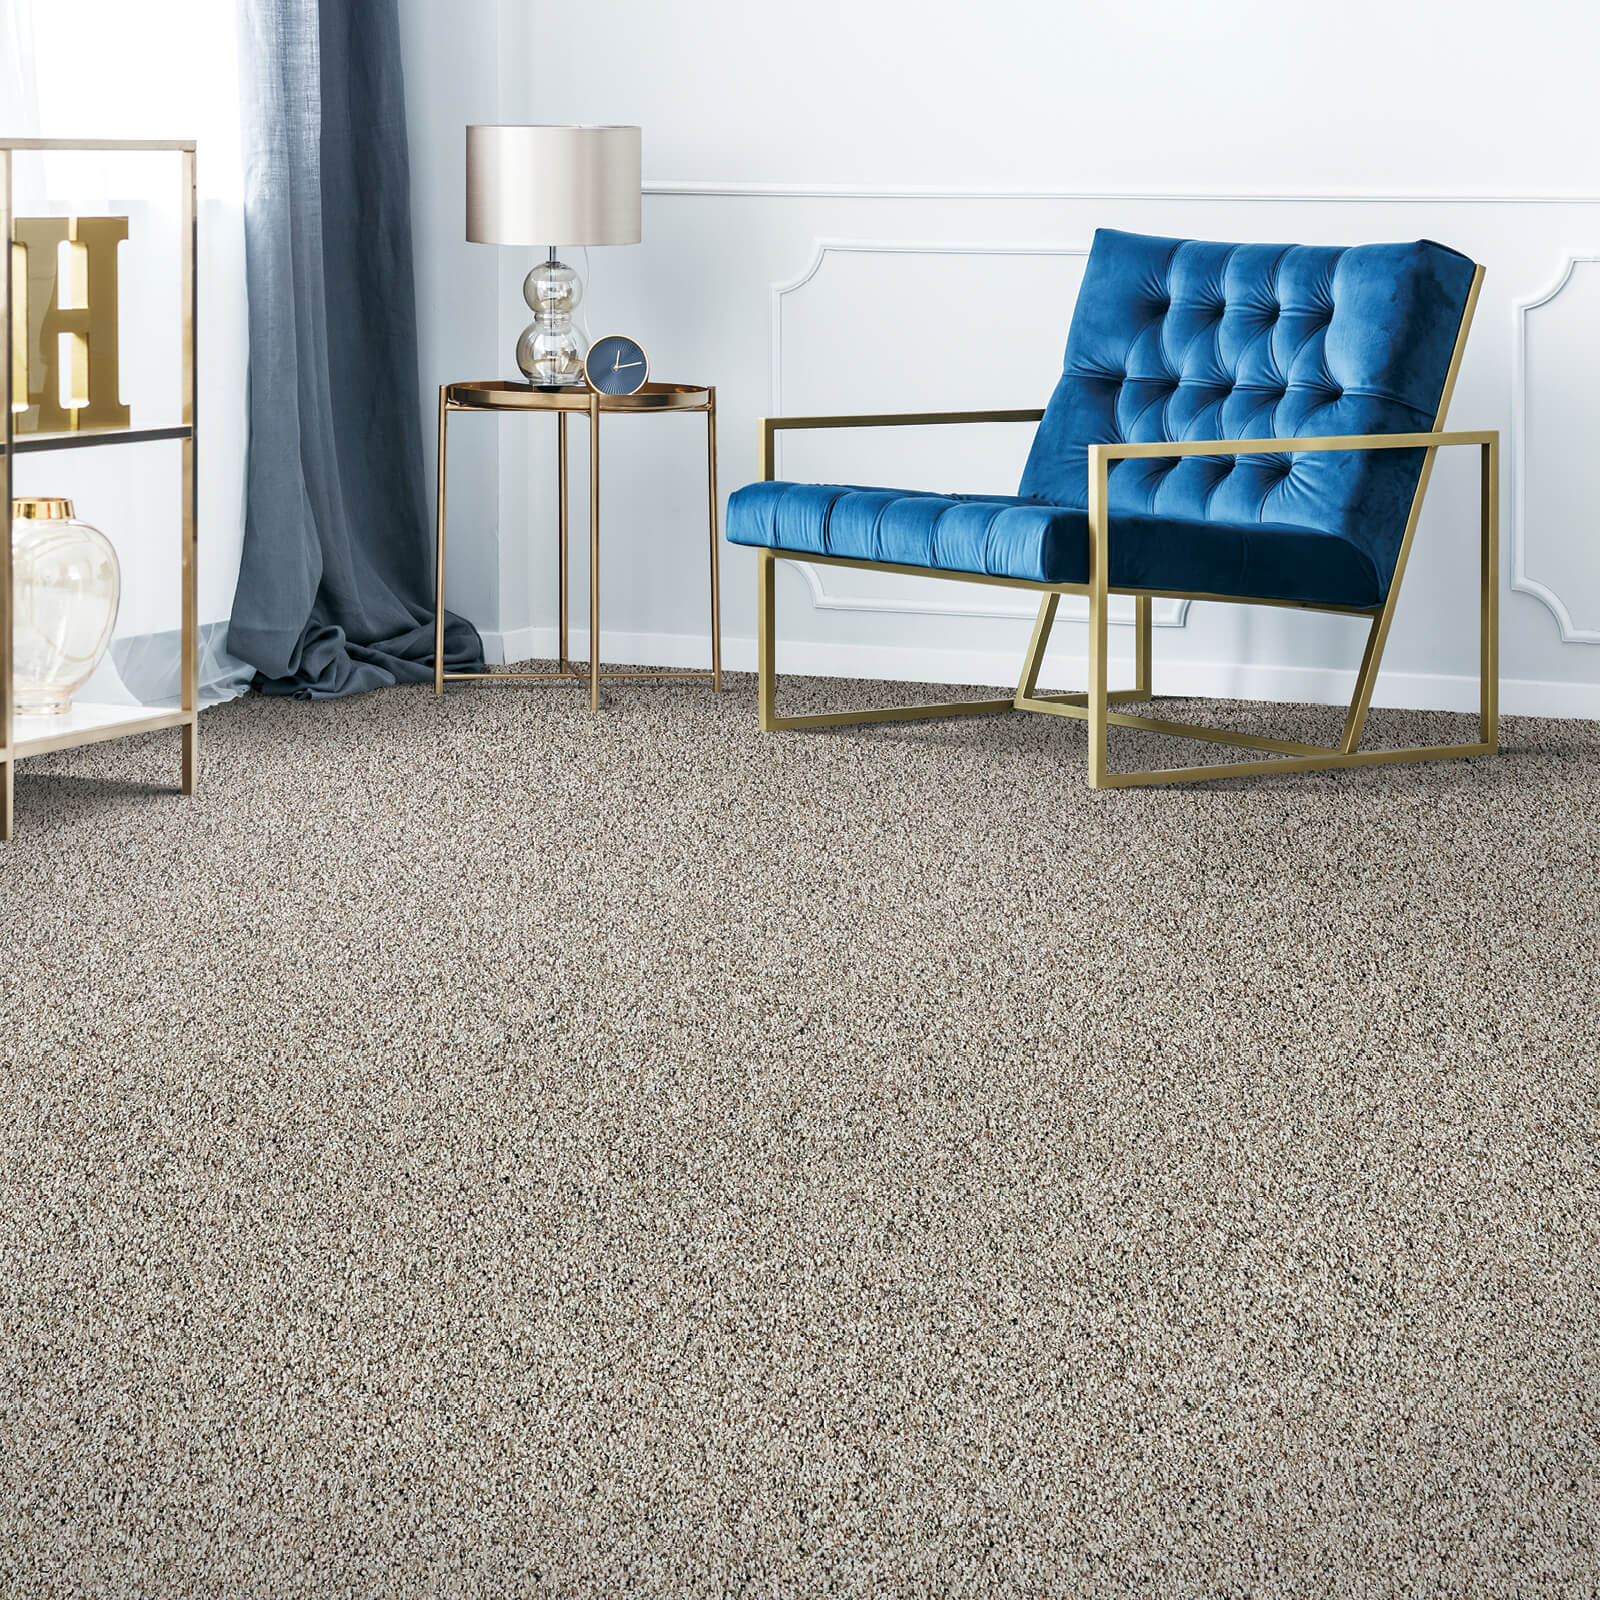 Remarkable carpet vision | Floorida Floors